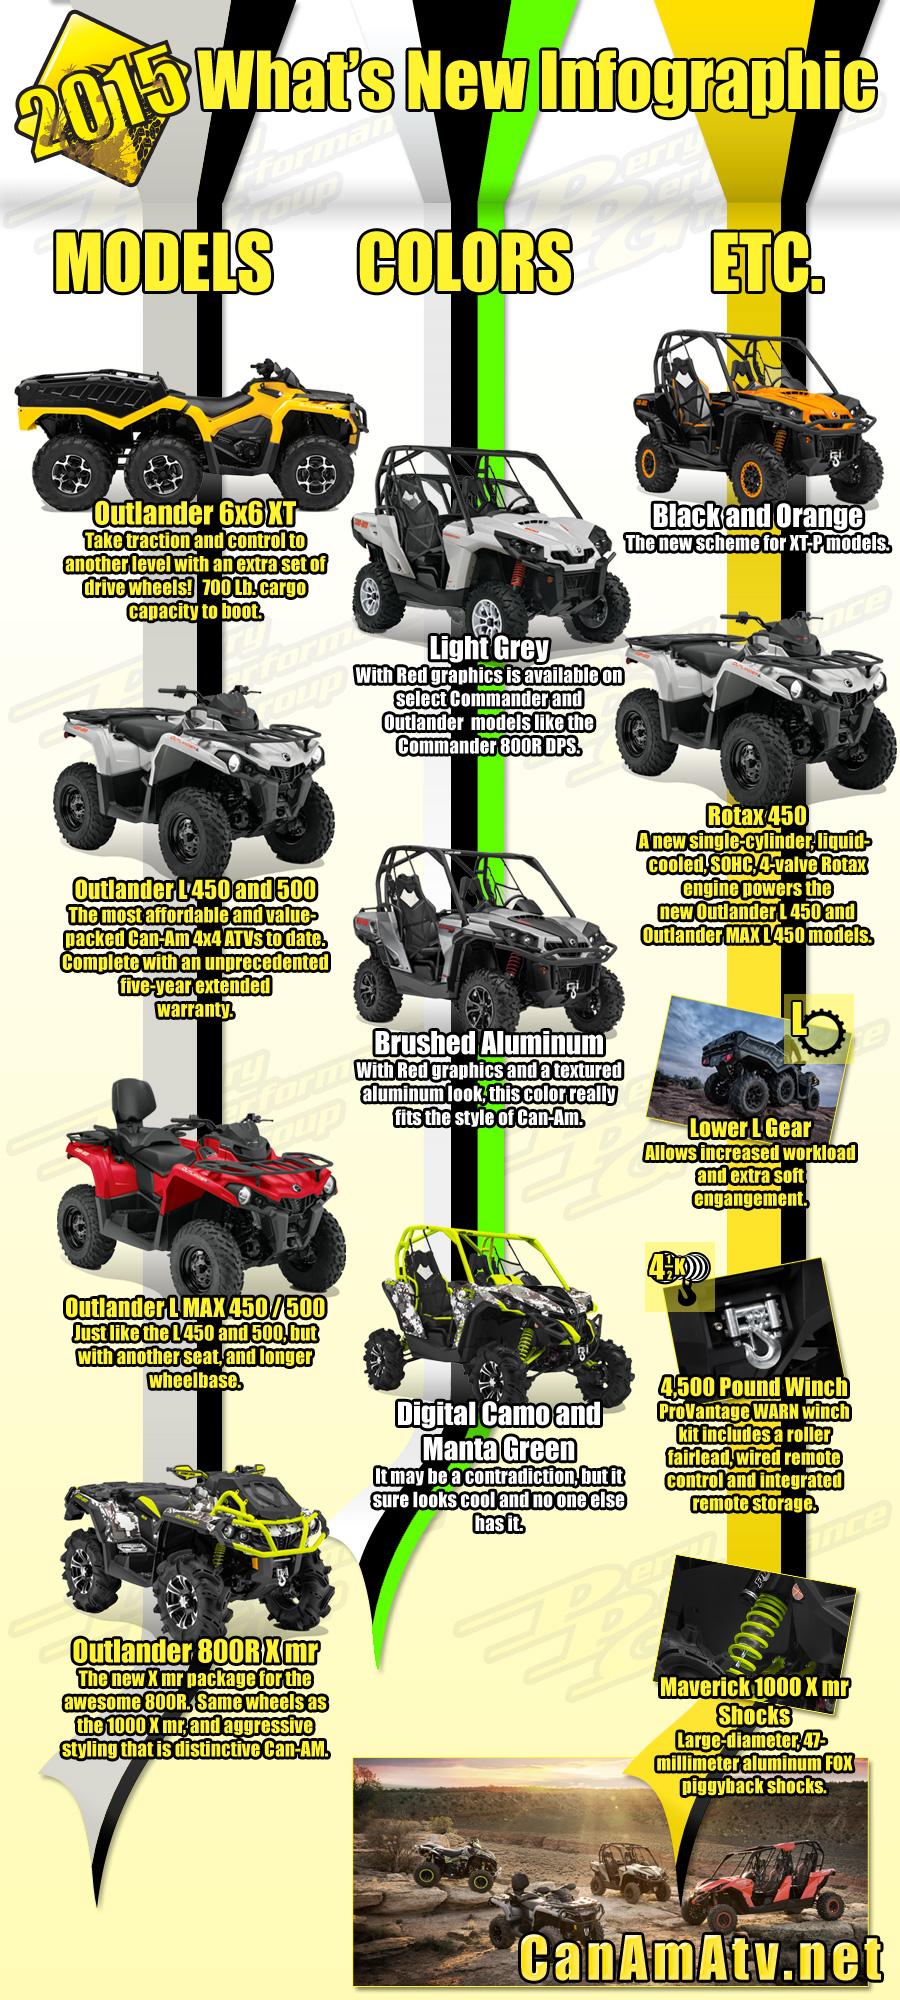 What's new for Can-Am in 2015?